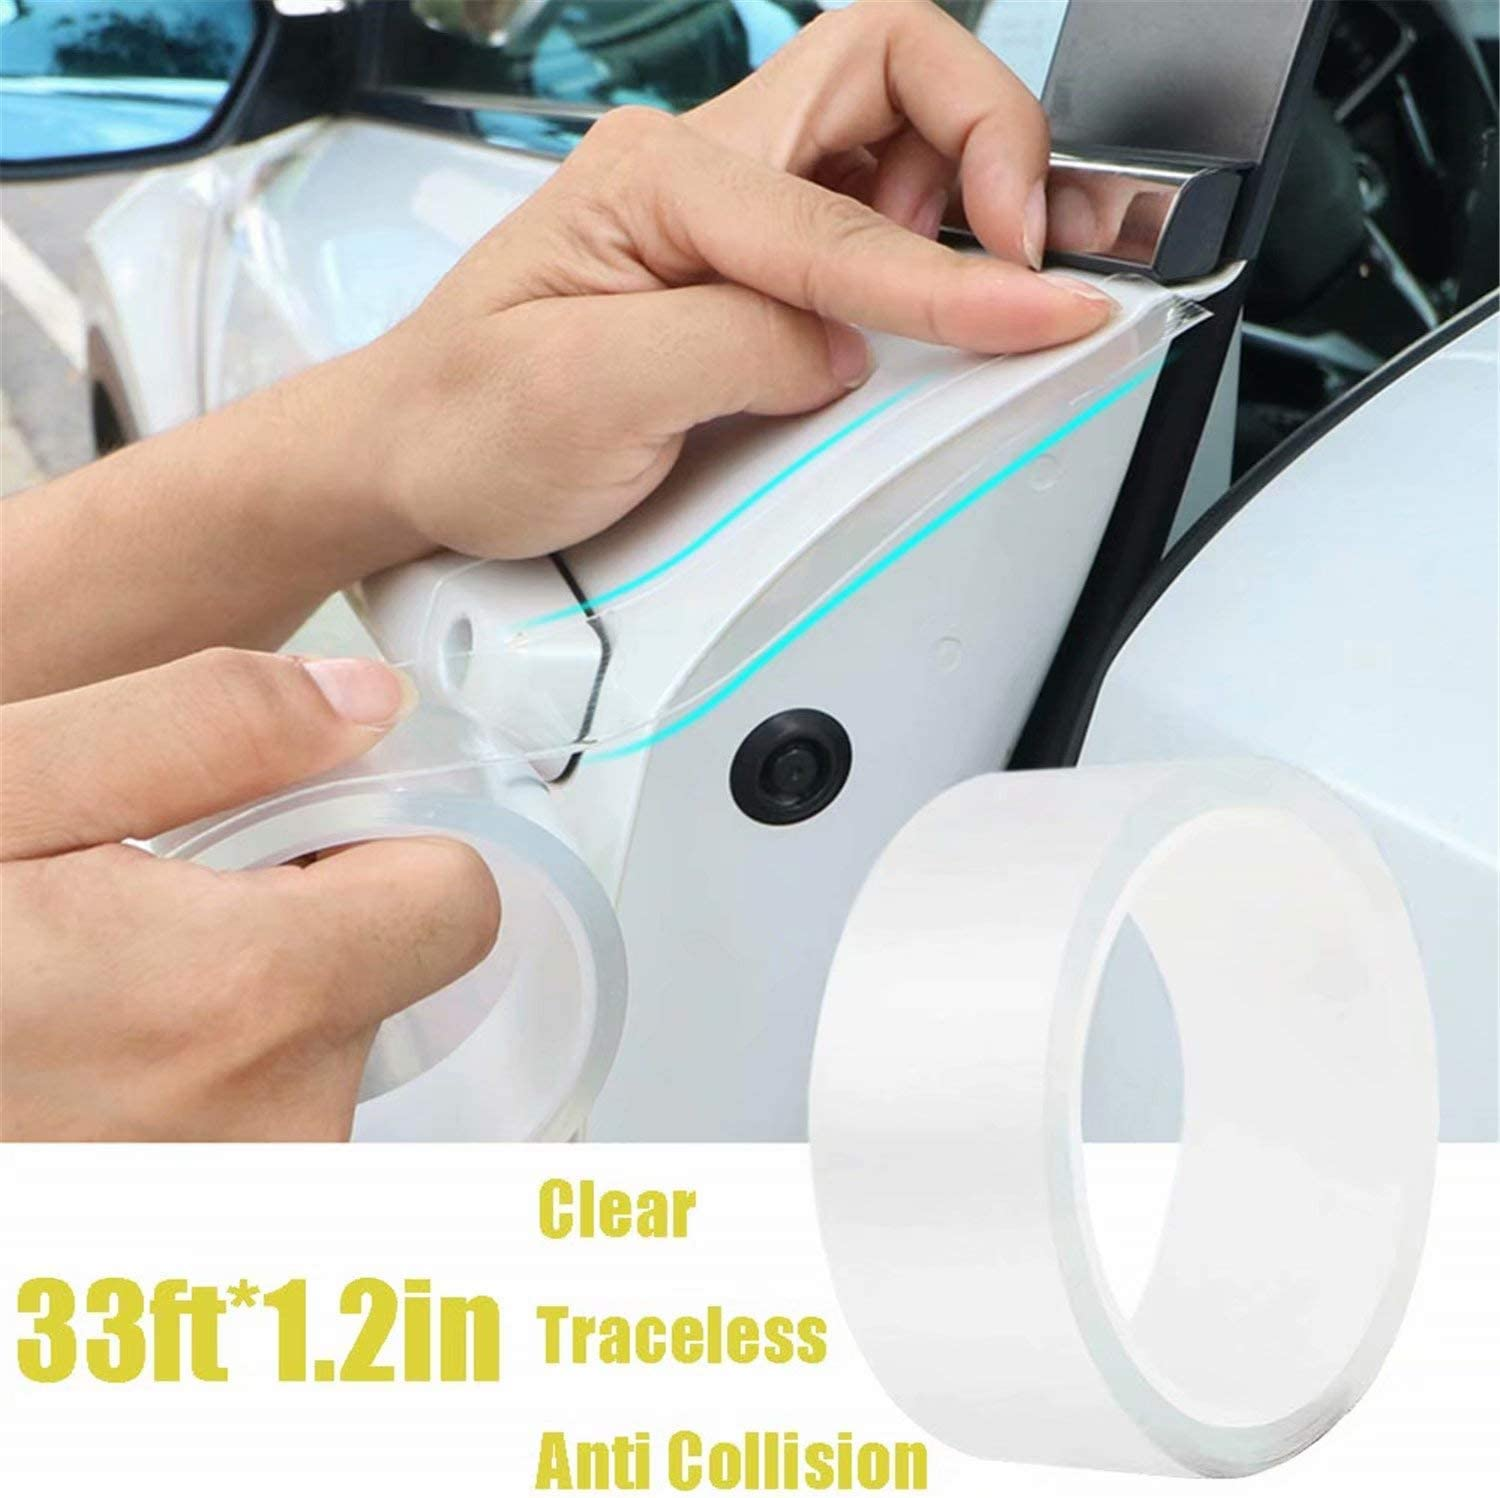 Anti-Collision Transparent Adhesive Tape Seal Strip Edge Entry Sill Guard Scuff Plate Protectors Invisible Universal Anti-Scratch Waterproof Tape for Car Door Edge Bumper Corner Eyebrow Mirror 1.2in